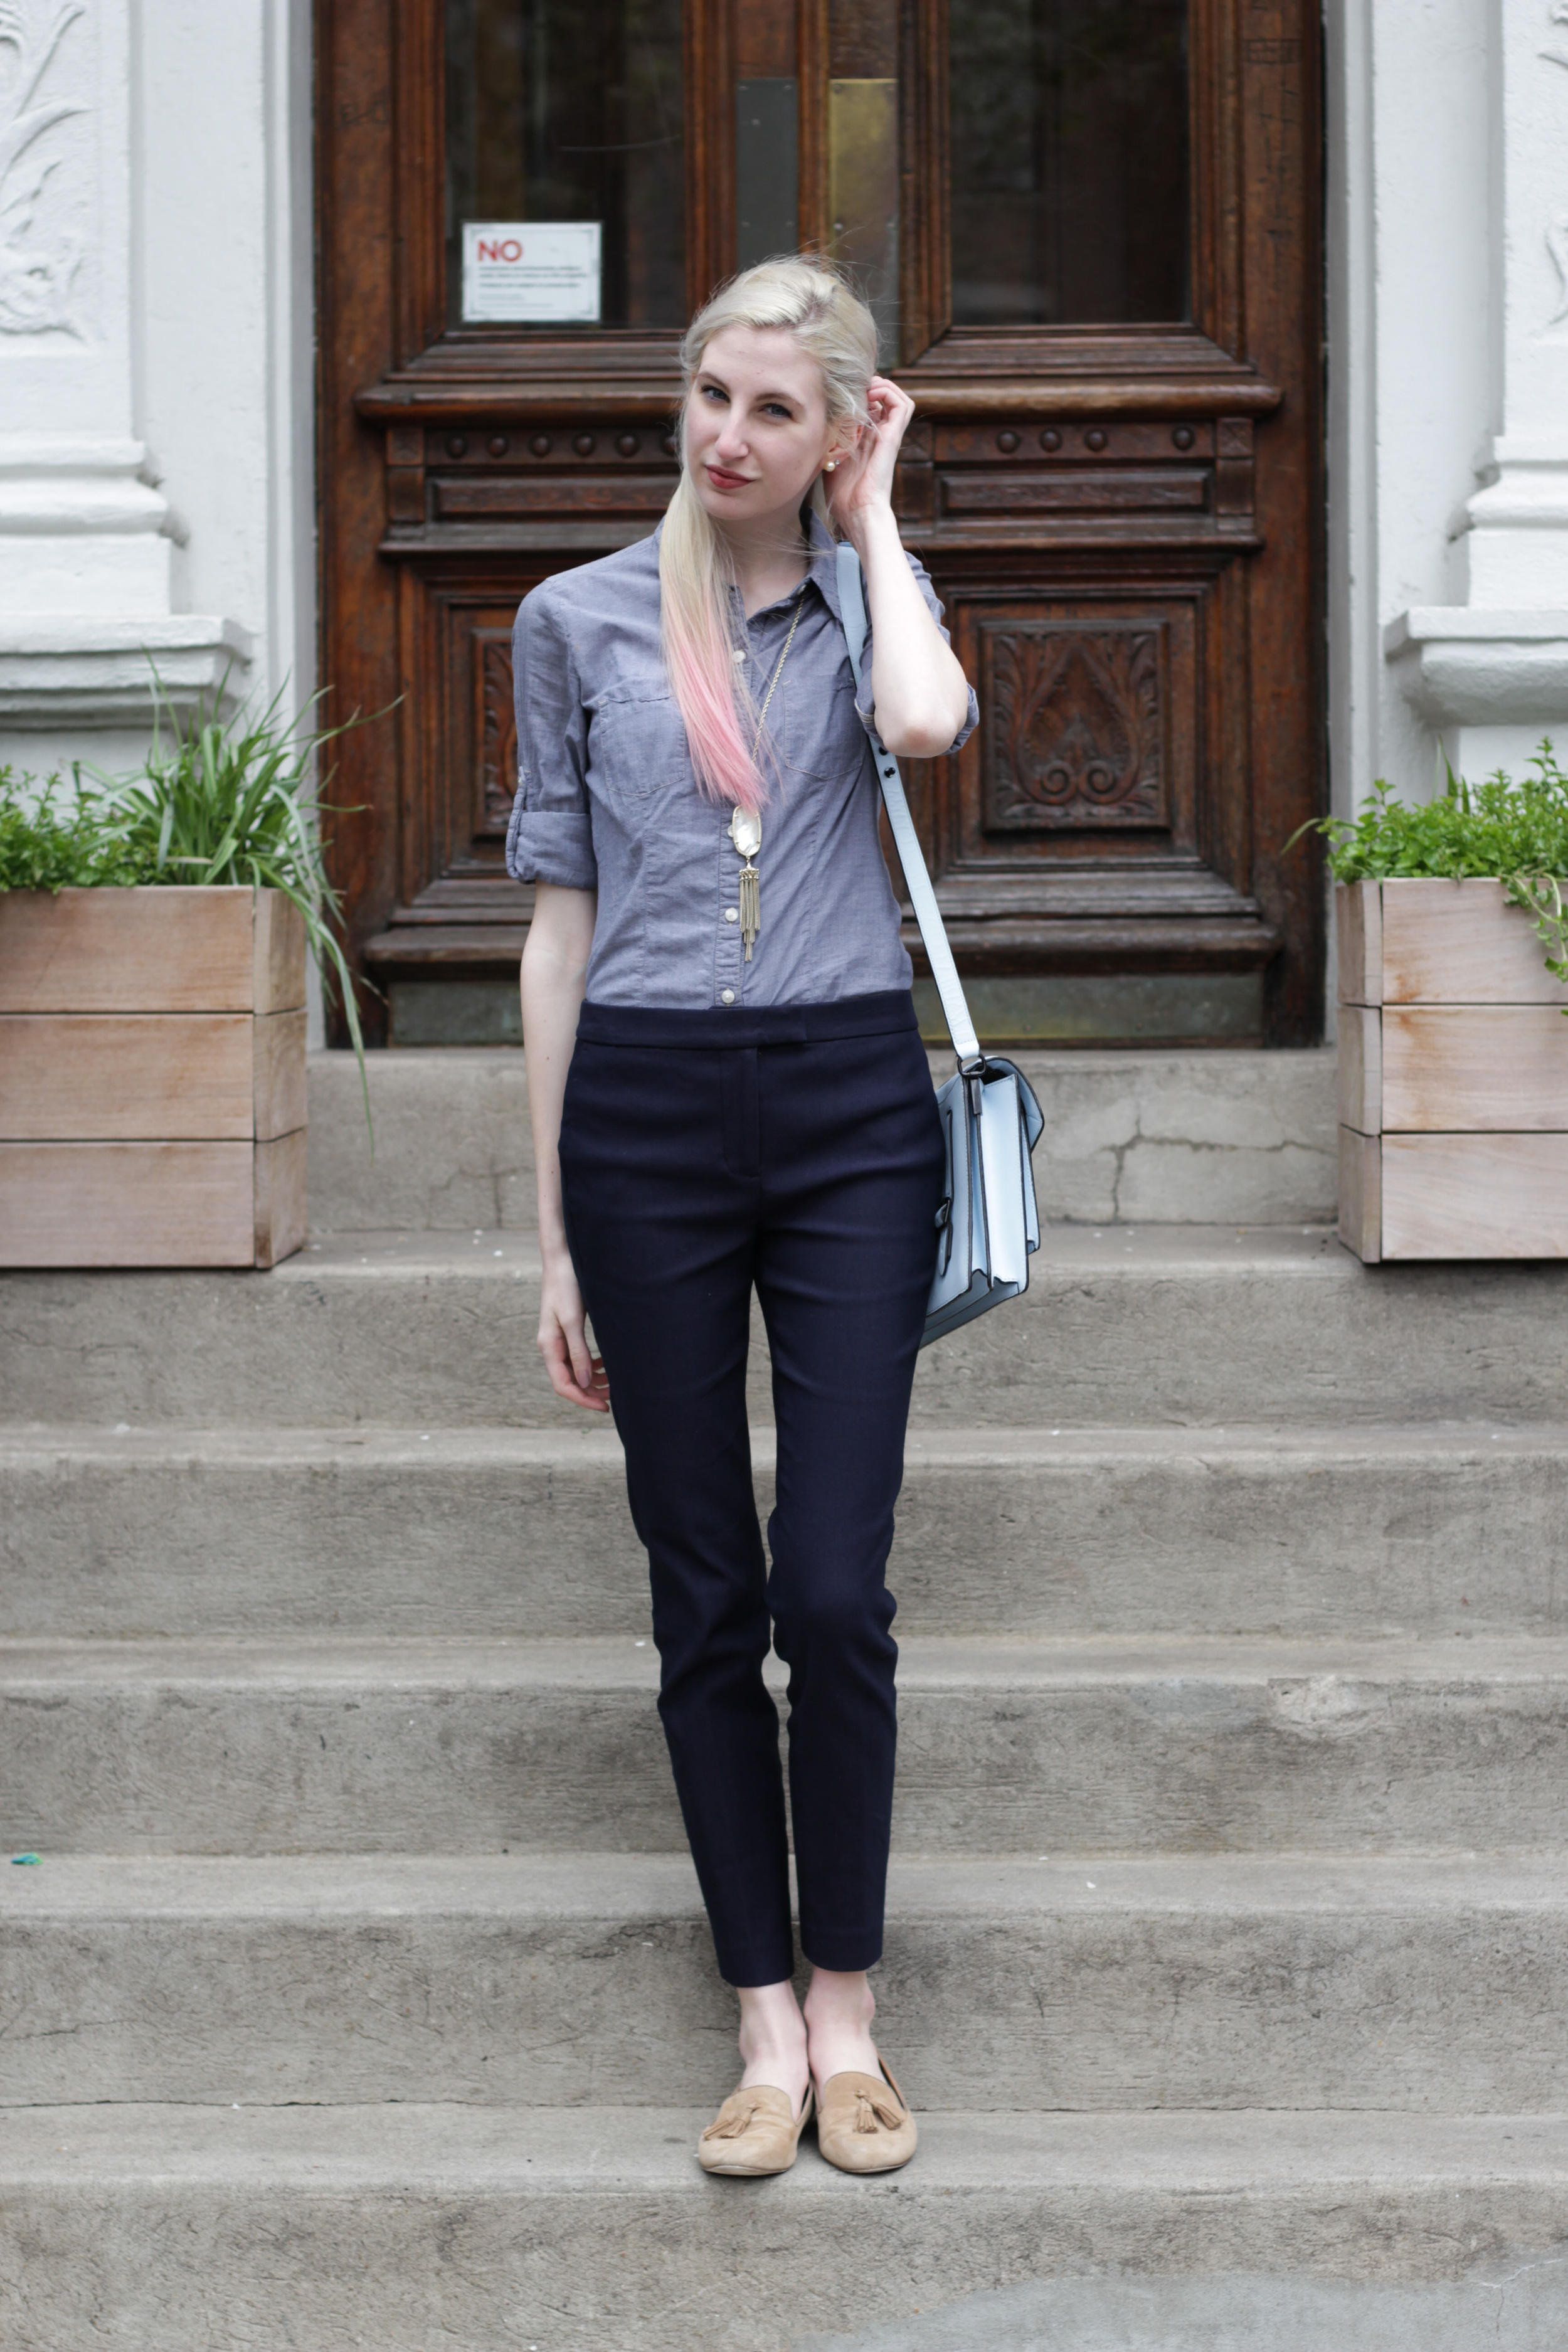 Chambray button down, J.Crew navy Ryder pants, J.Crew Factory tassel Cora loafers, Loeffler Randall bag, kendra scott rayne necklace in opal